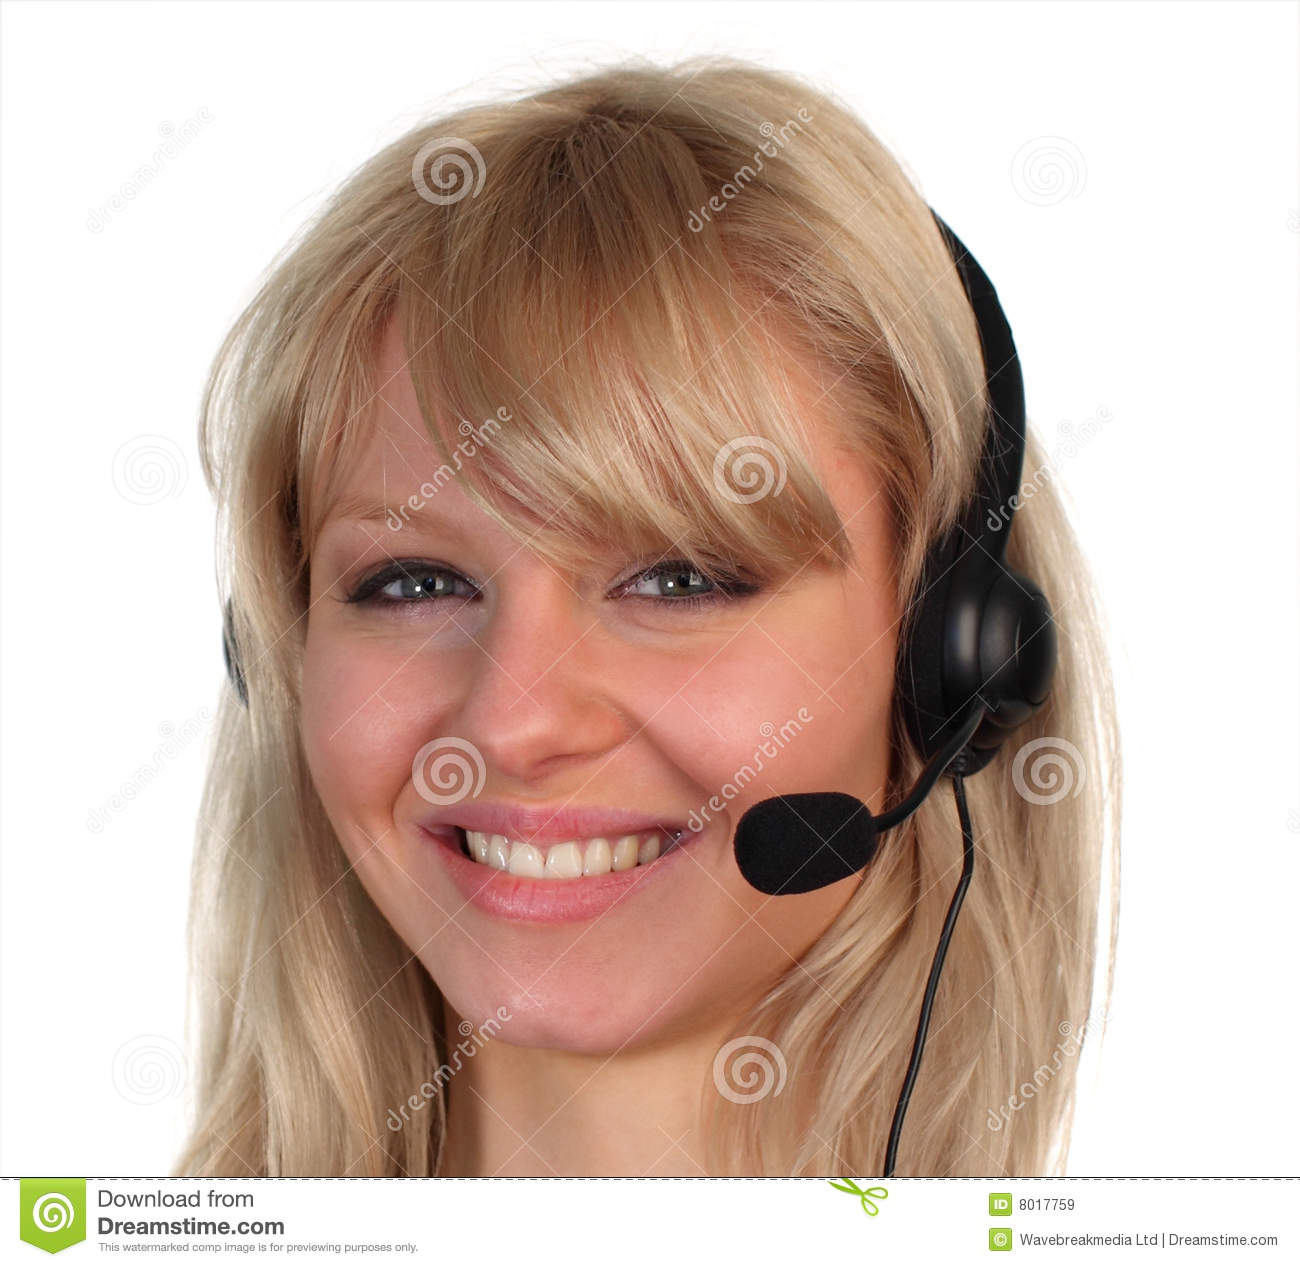 w working on in customer service royalty stock images w working on in customer service